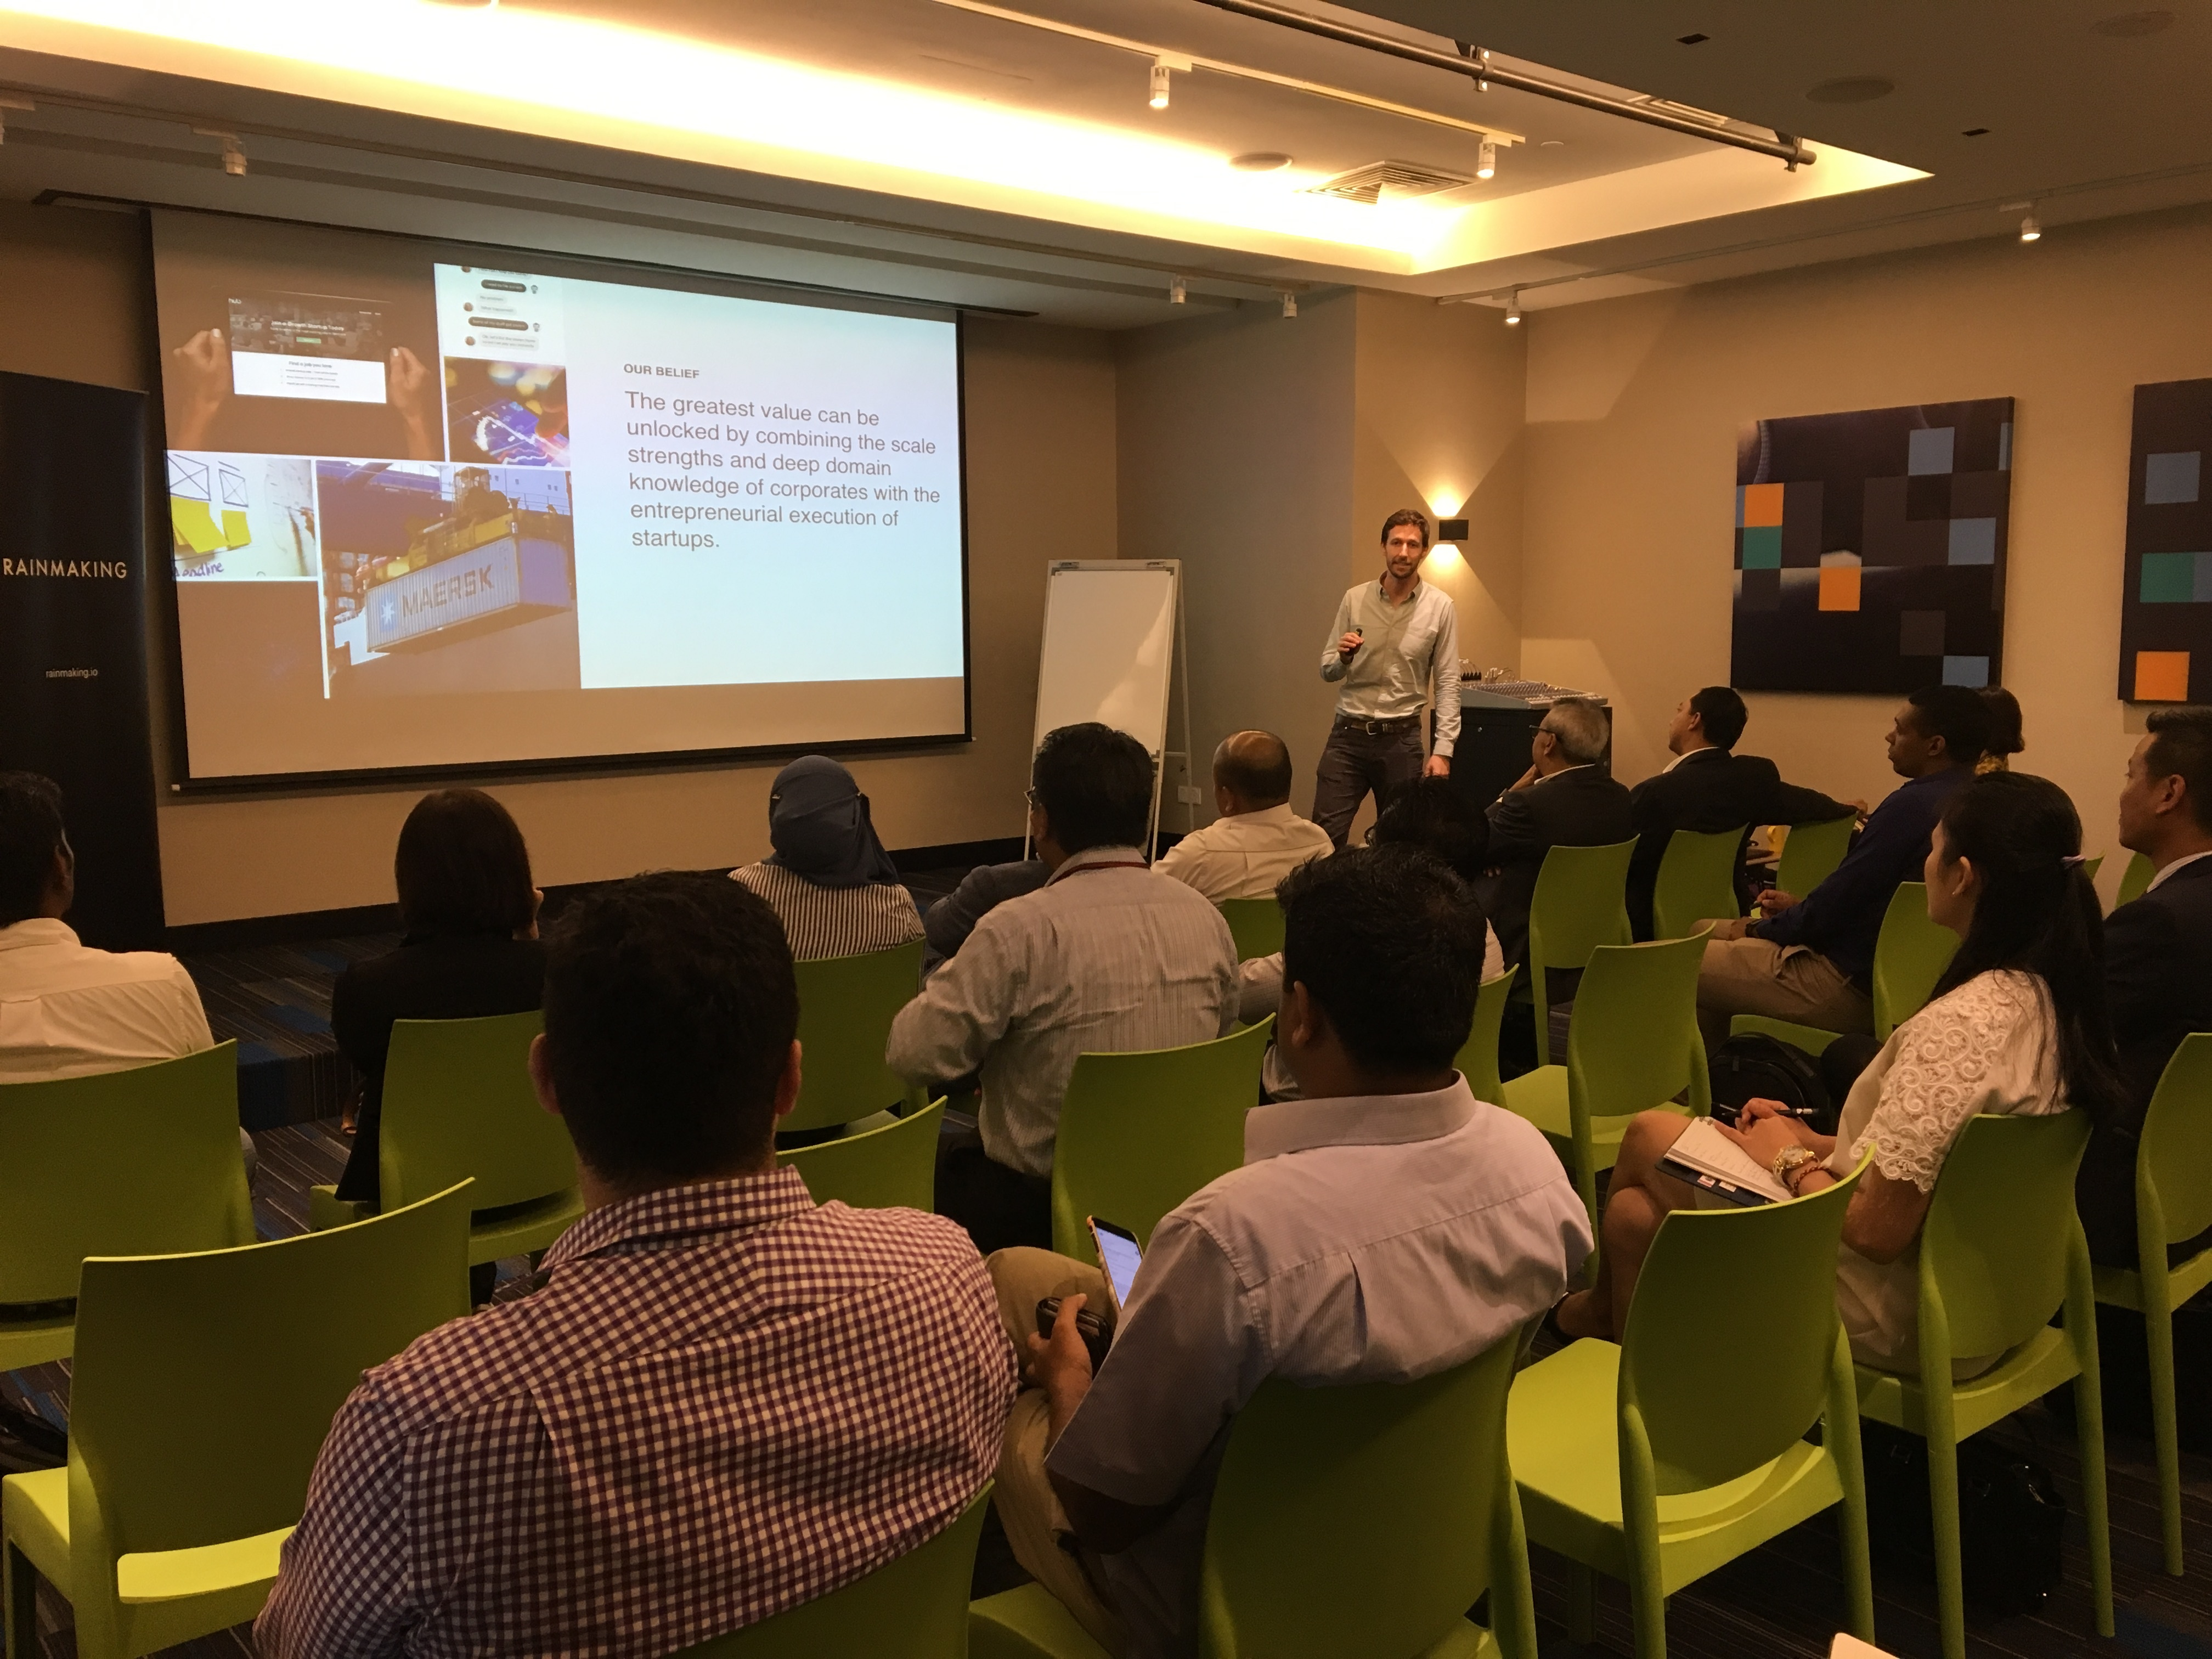 Rainmaking KL: Corporate Innovation Lunch (DTAP Special)